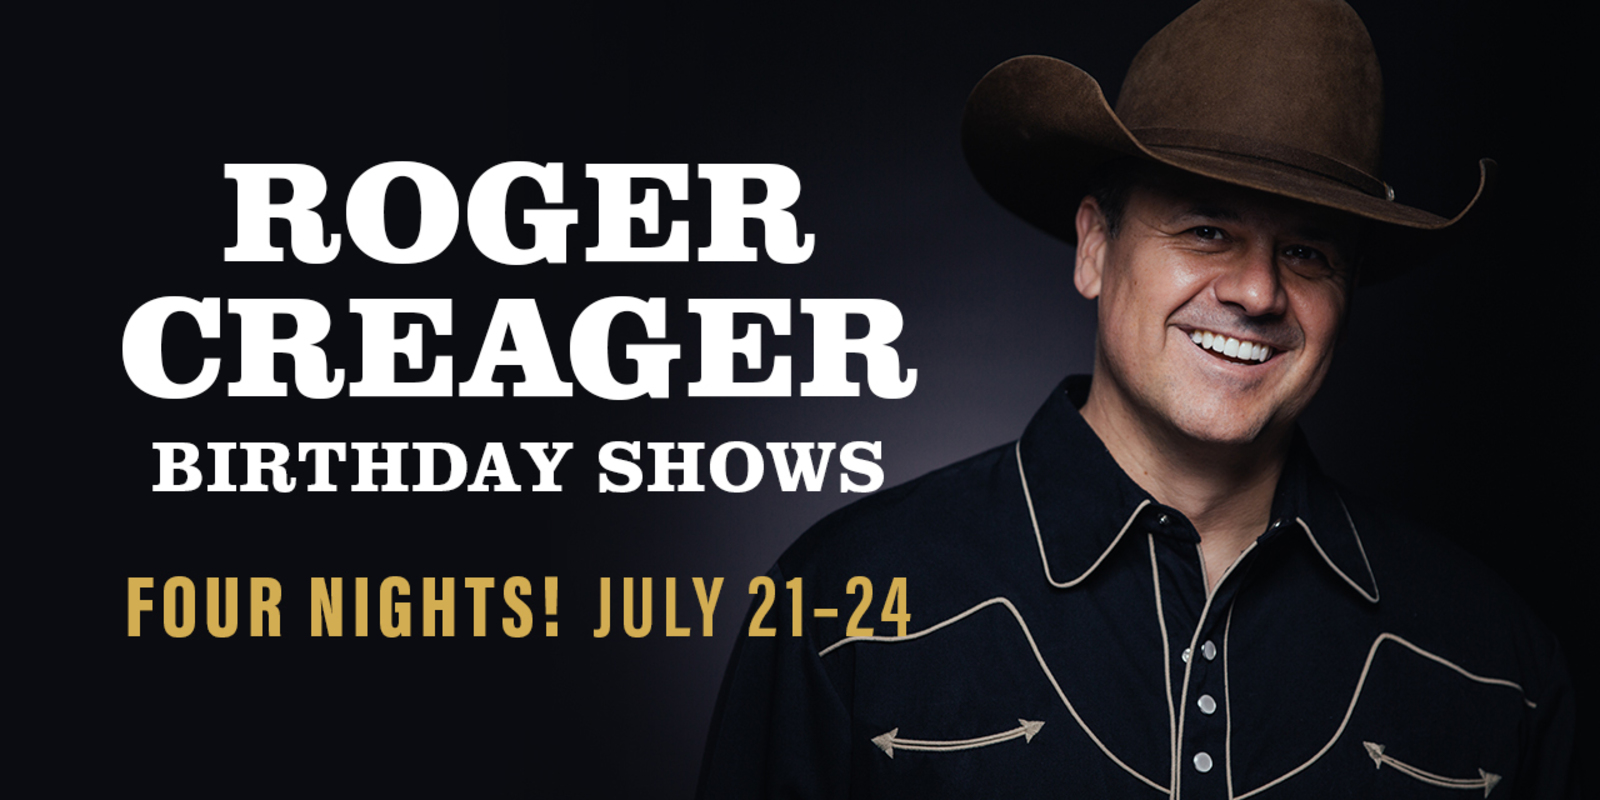 Roger Creager's Birthday Shows